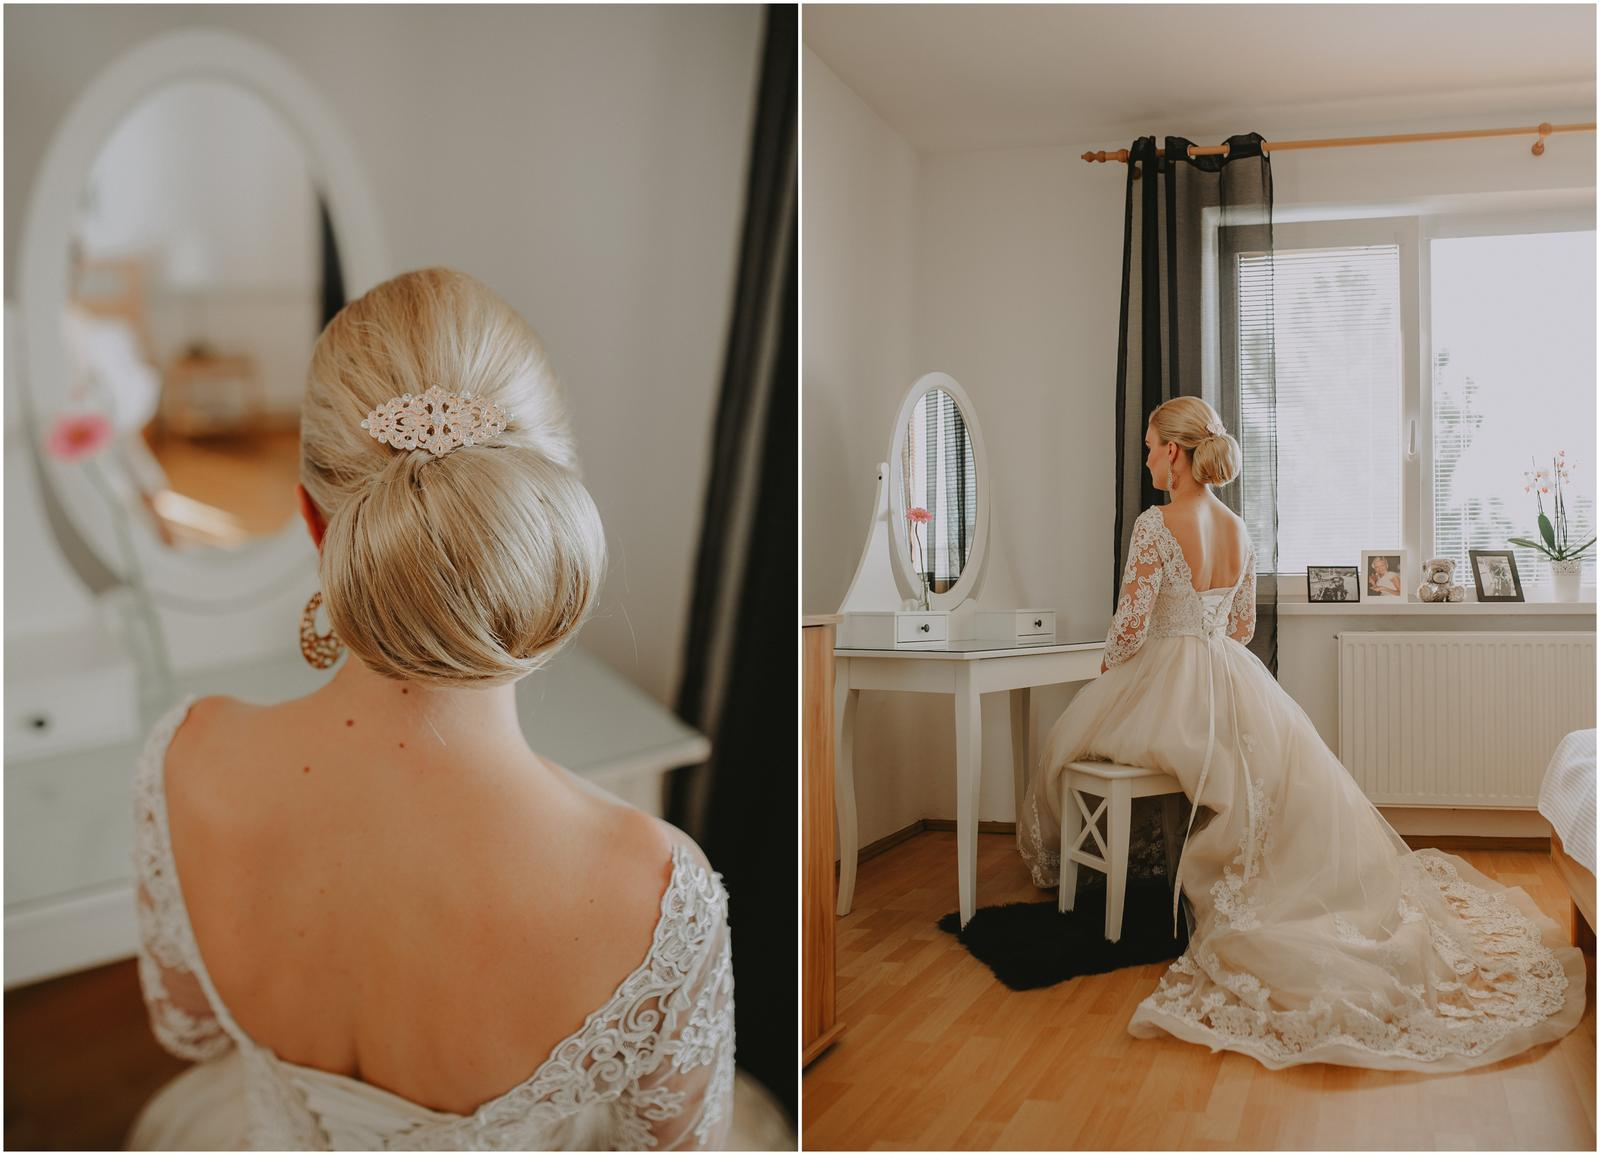 Viktória👰{{_AND_}}Martin🤵 - ružovozlatý hrebienok vo vlasoch: https://www.aliexpress.com/item/Elegant-Art-Deco-Rose-Gold-Pearls-Rhinestones-Flower-Wedding-Hair-Comb-Crystal-Bridal-Hair-Piece-Hair/32622873559.html?spm=a2g0s.9042311.0.0.PusBZK